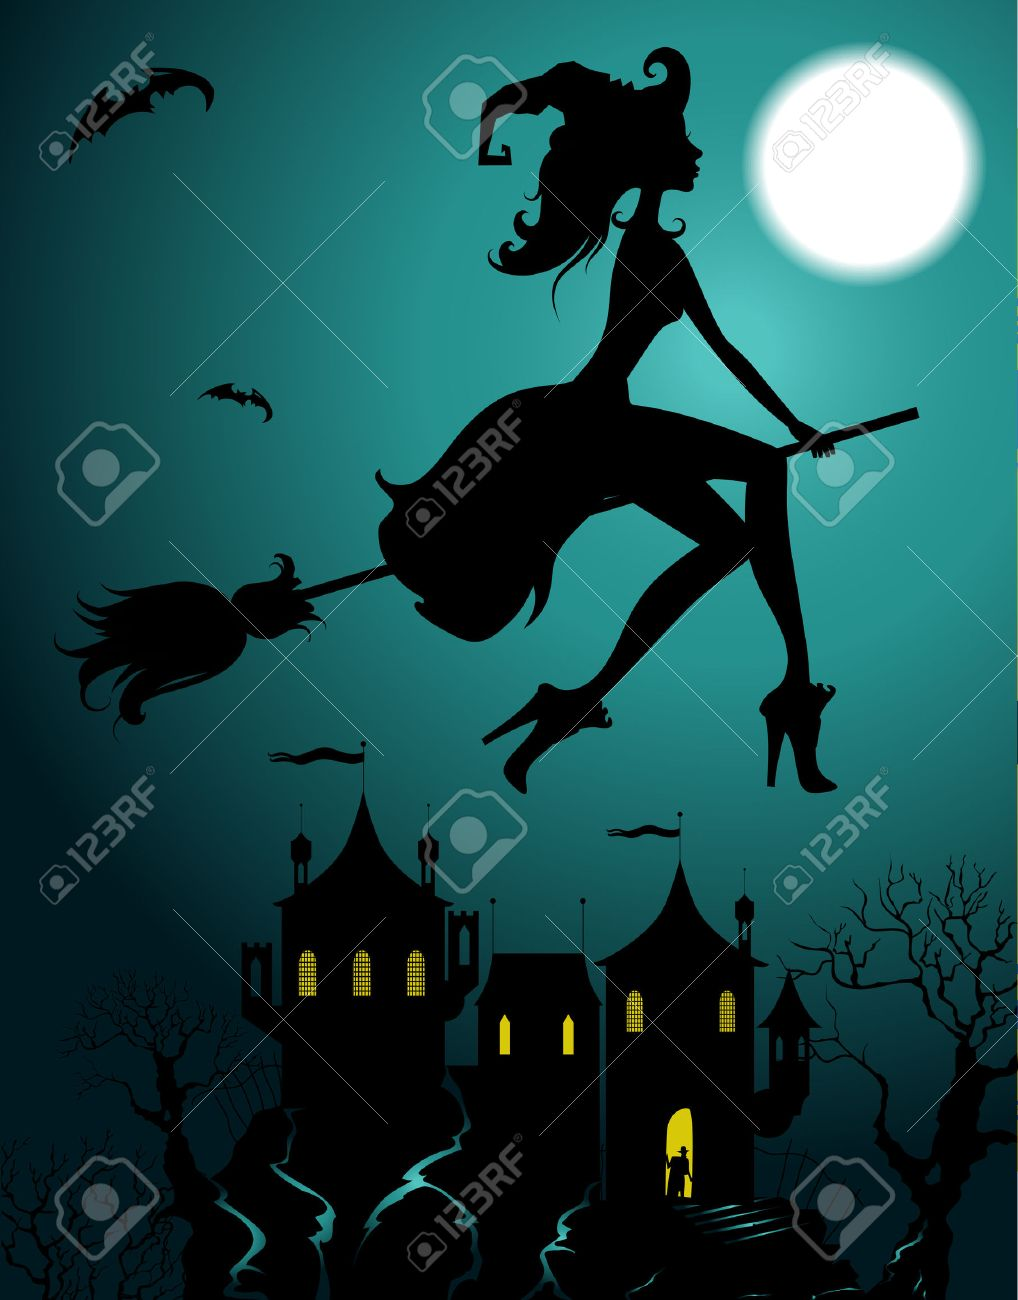 Background with flying beautiful witch silhouette - 46779413